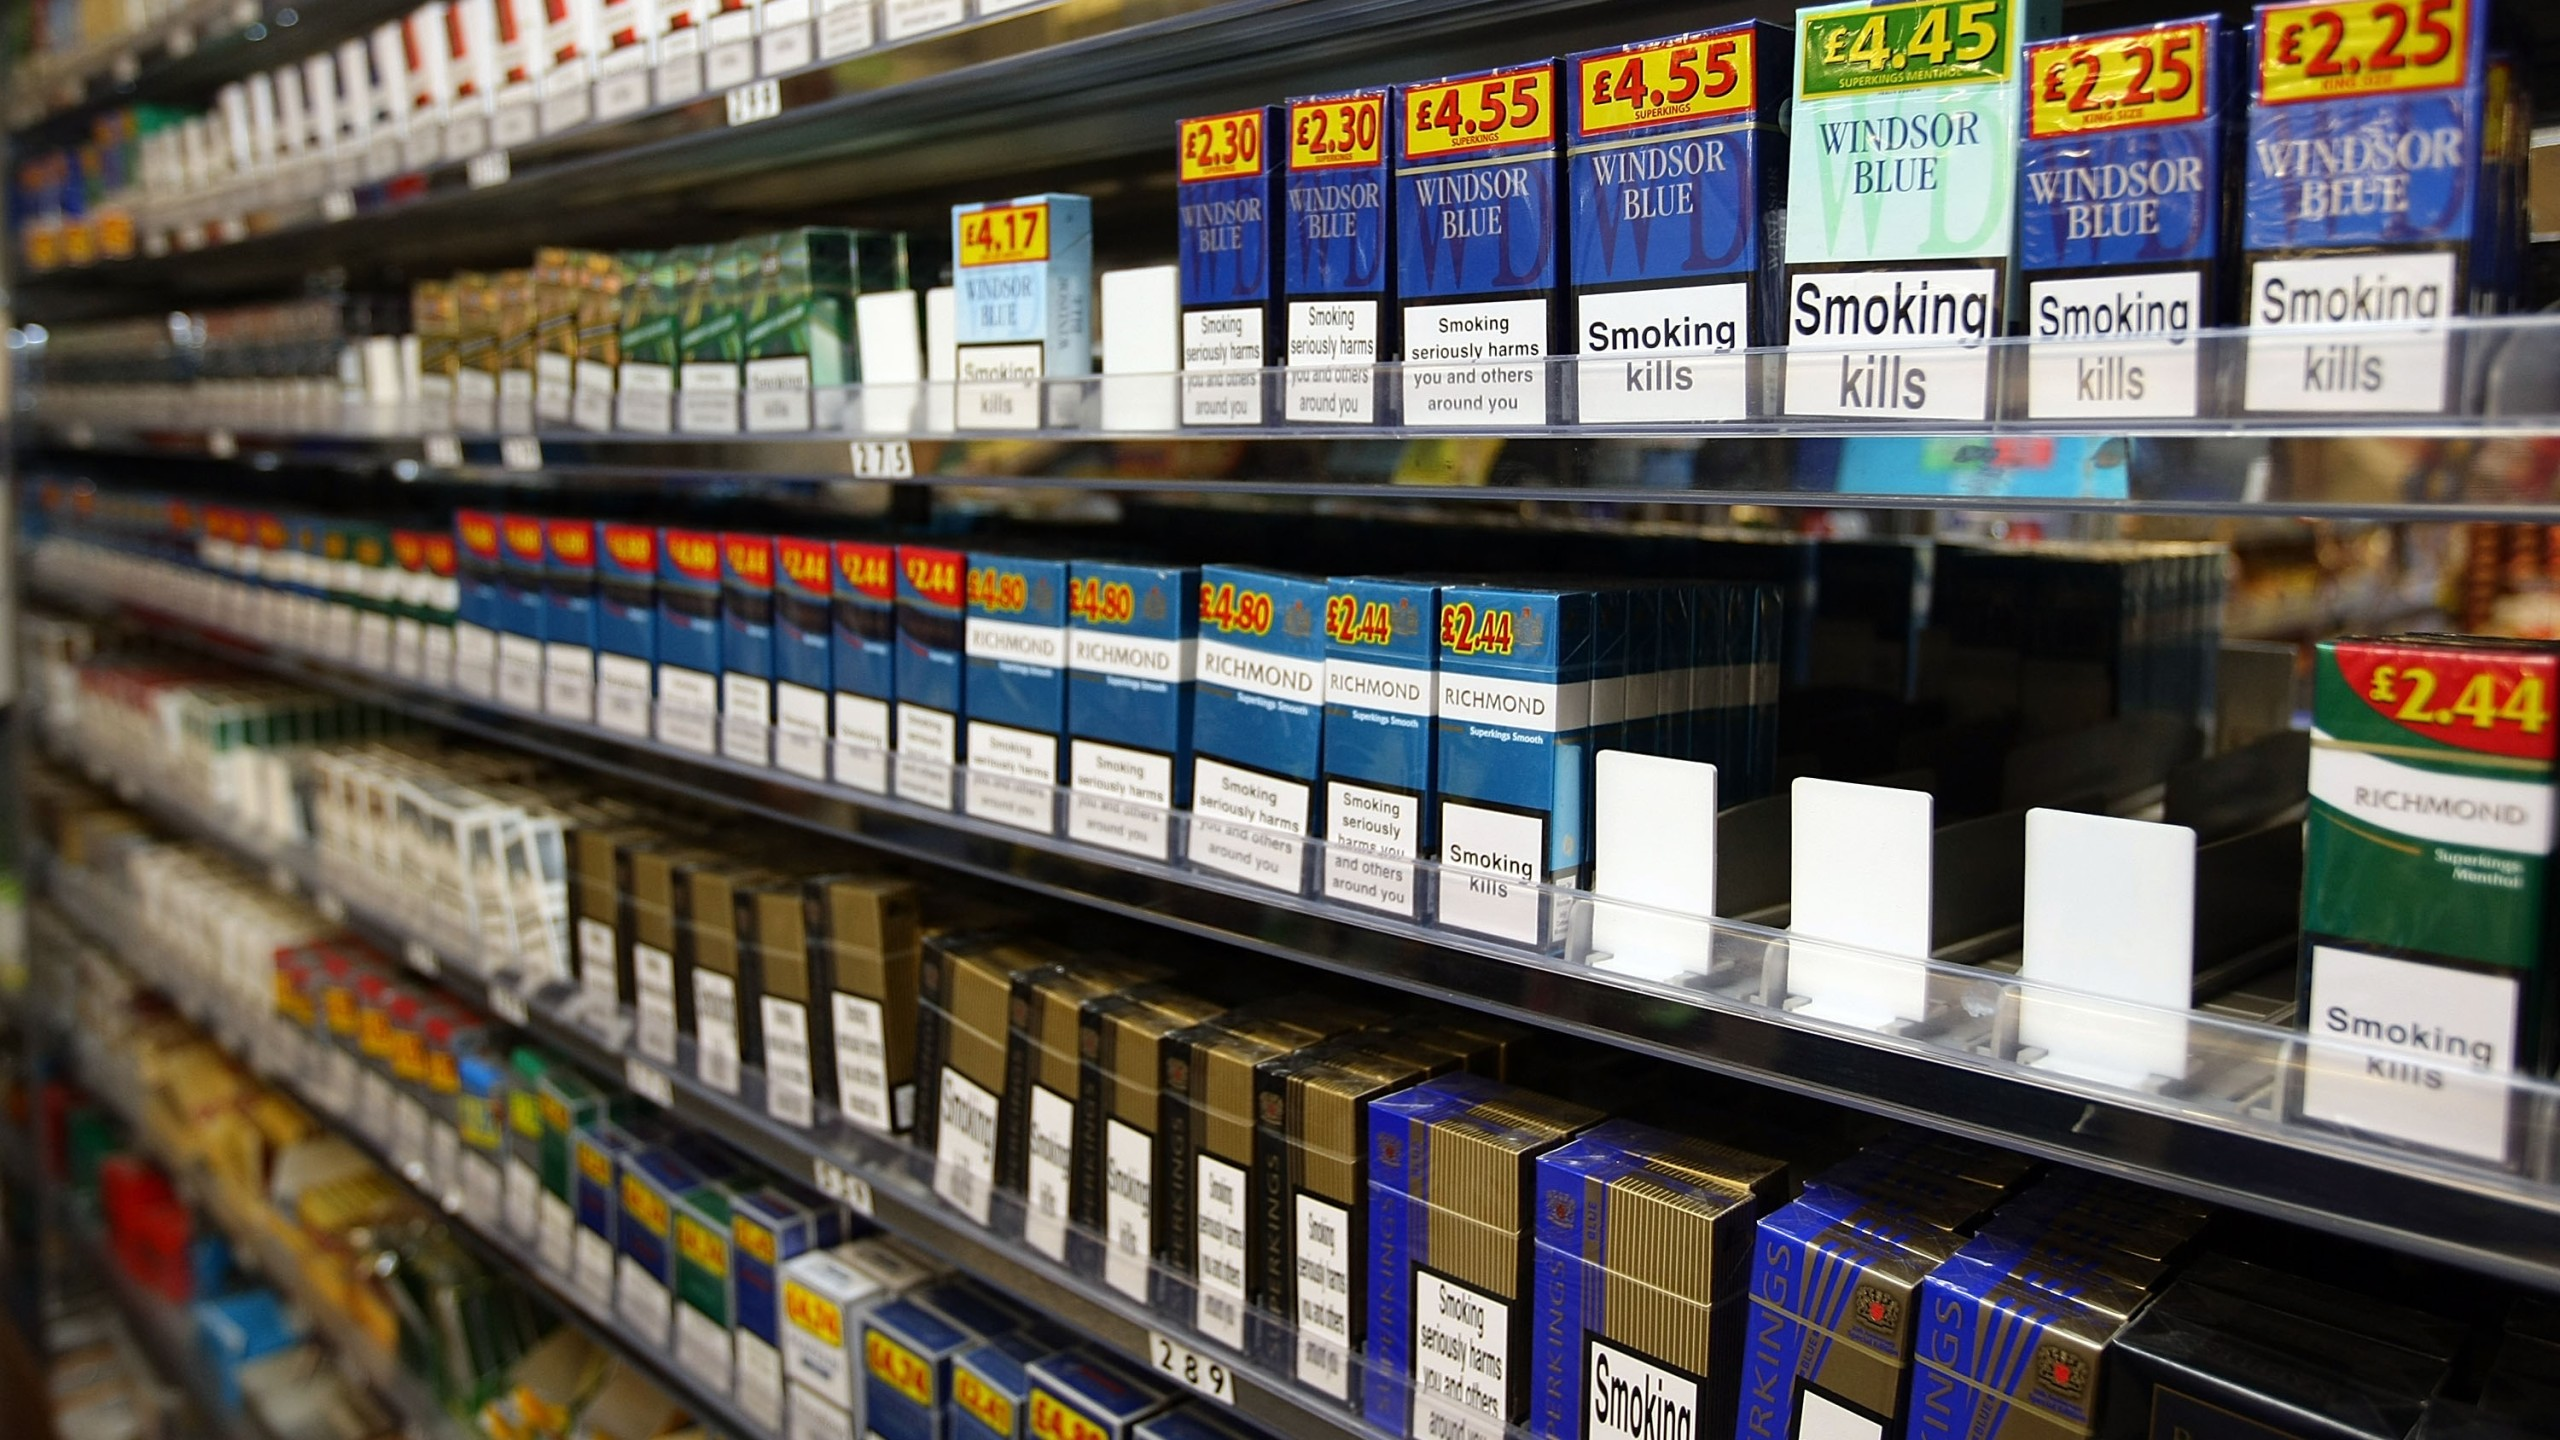 Cigarettes and tobacco are on display in a store in Liverpool, England on December 9, 2008. (Credit: Christopher Furlong/Getty Images)